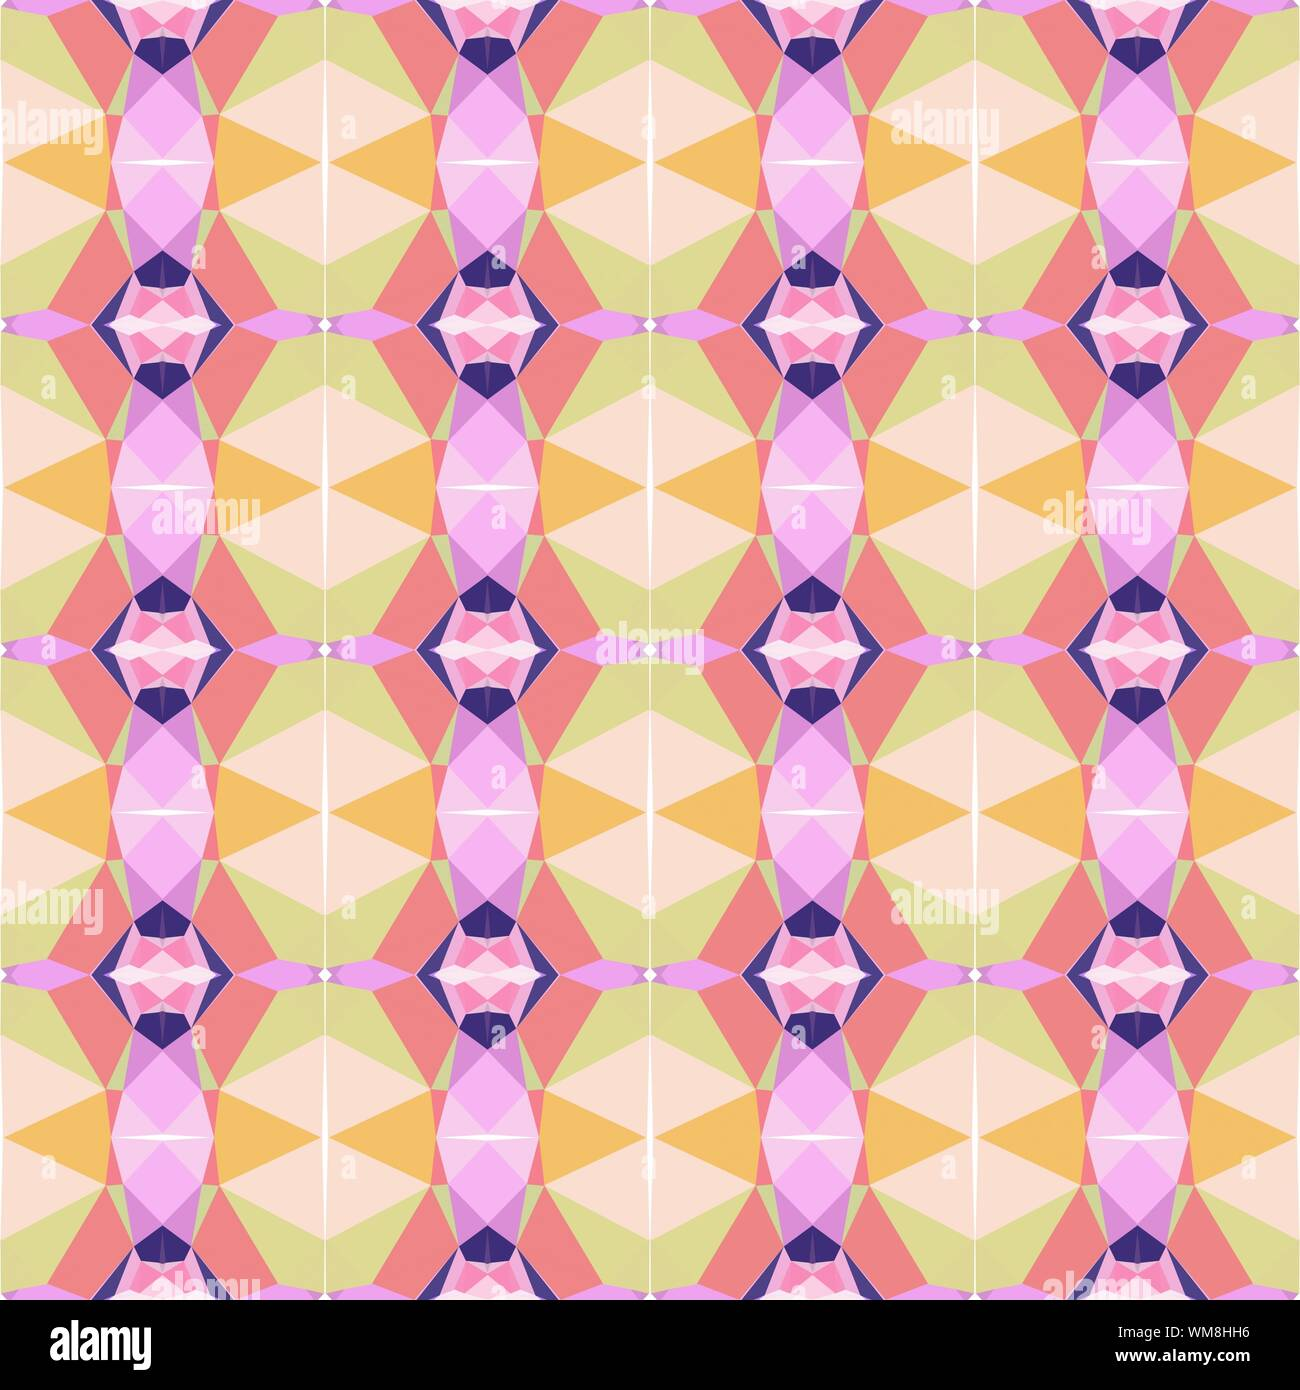 Seamless Repeatable Pattern Wallpaper With Khaki Pastel